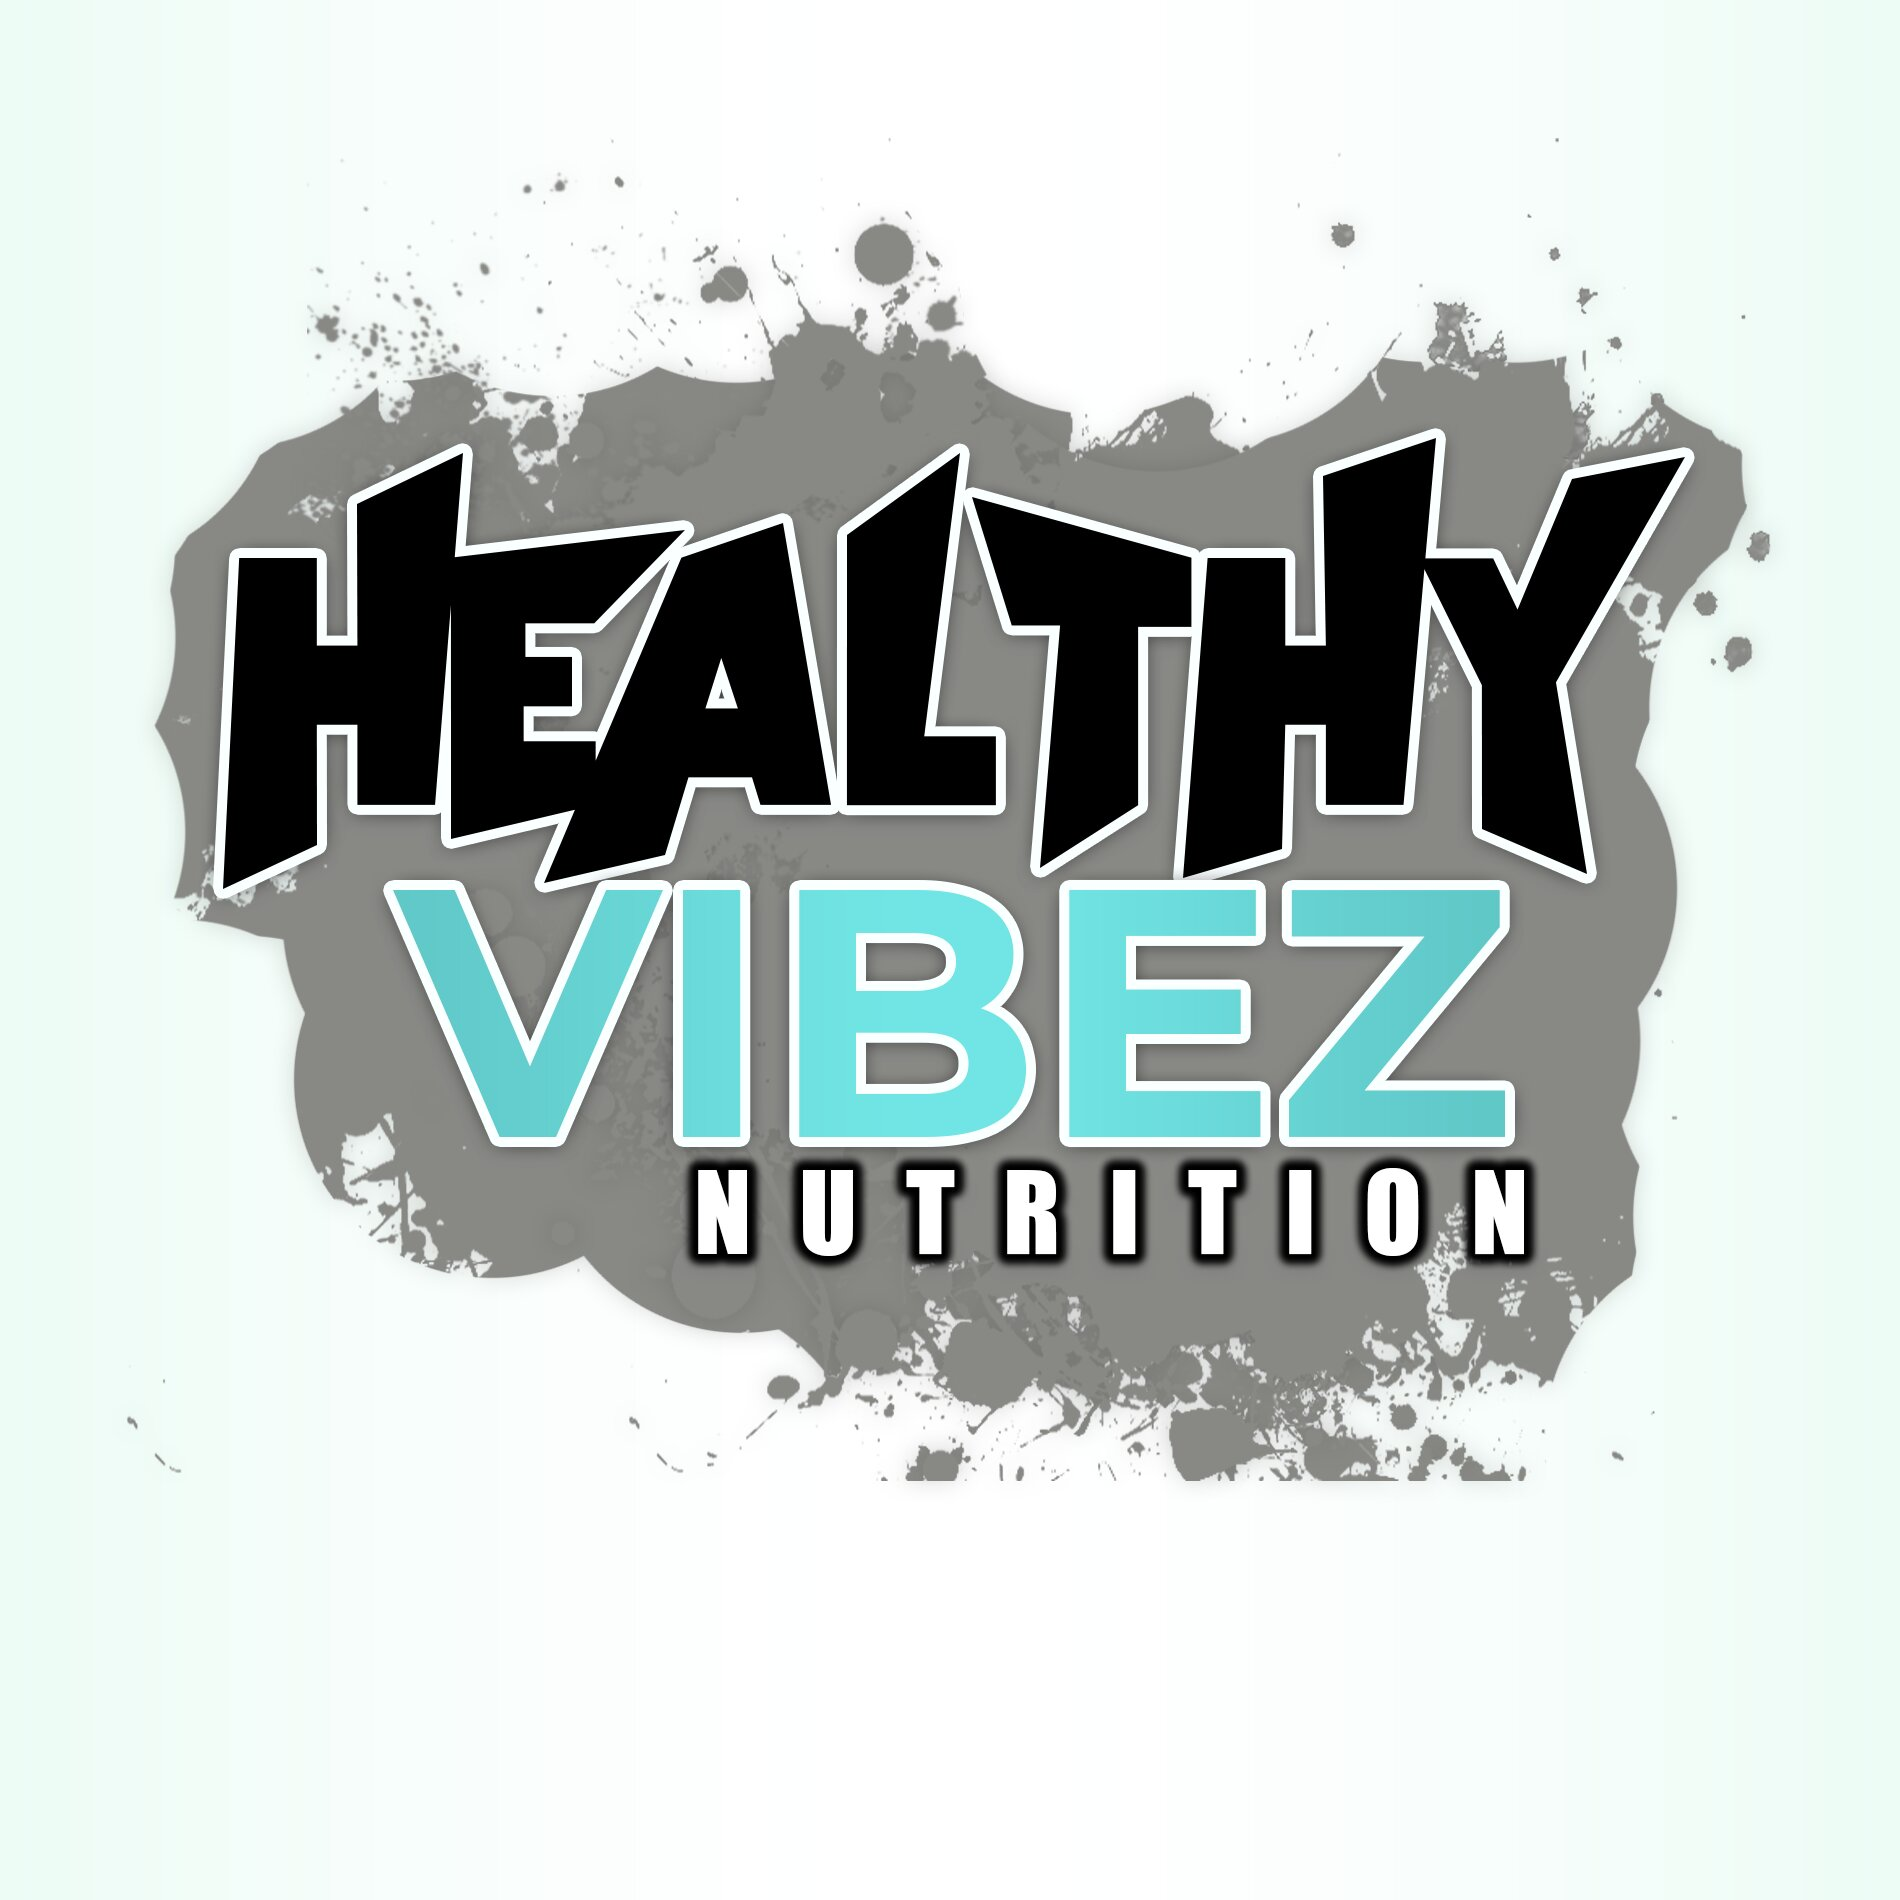 Healthy Vibez Nutrition